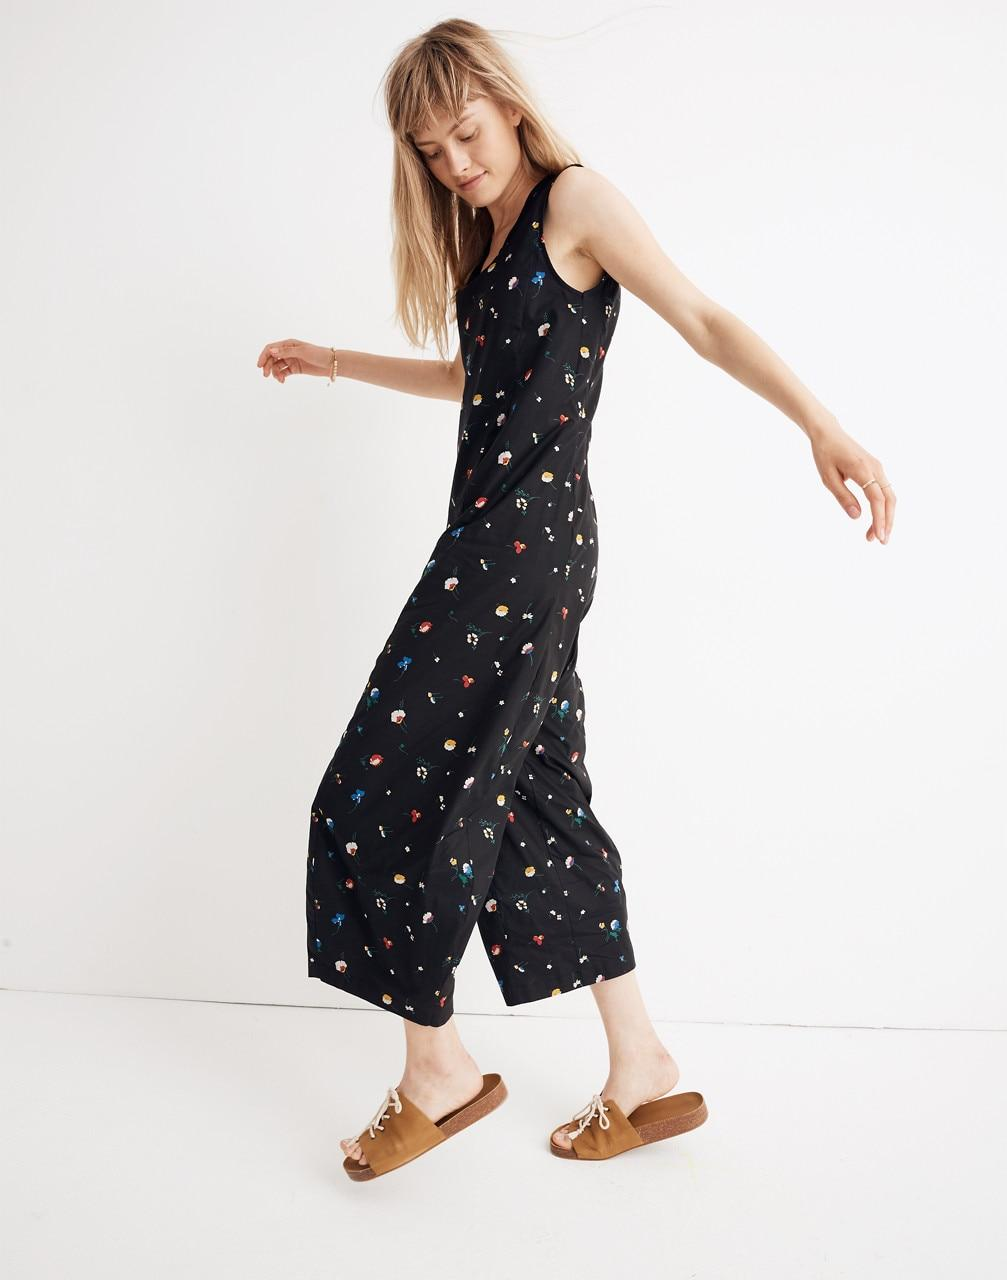 d71568d962e1 Madewell Caron Callahan Floral Morgan Jumpsuit in Black - Lyst